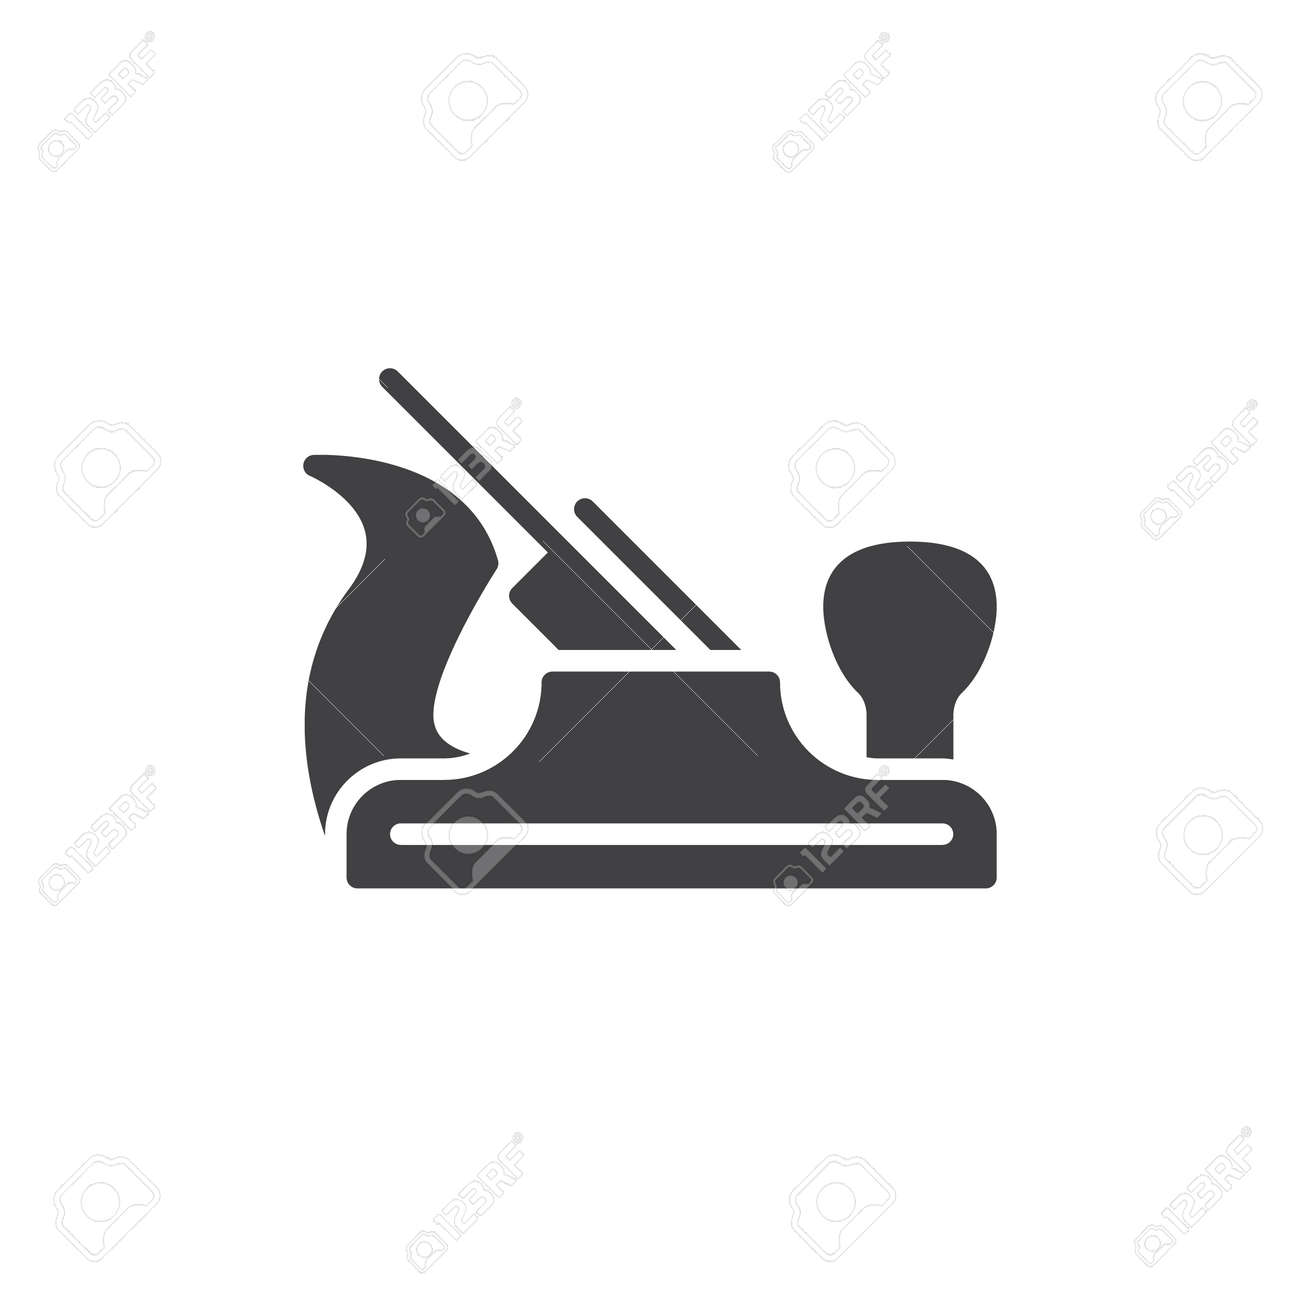 Carpenter Hand Plane Icon Vector Filled Flat Sign Solid Pictogram